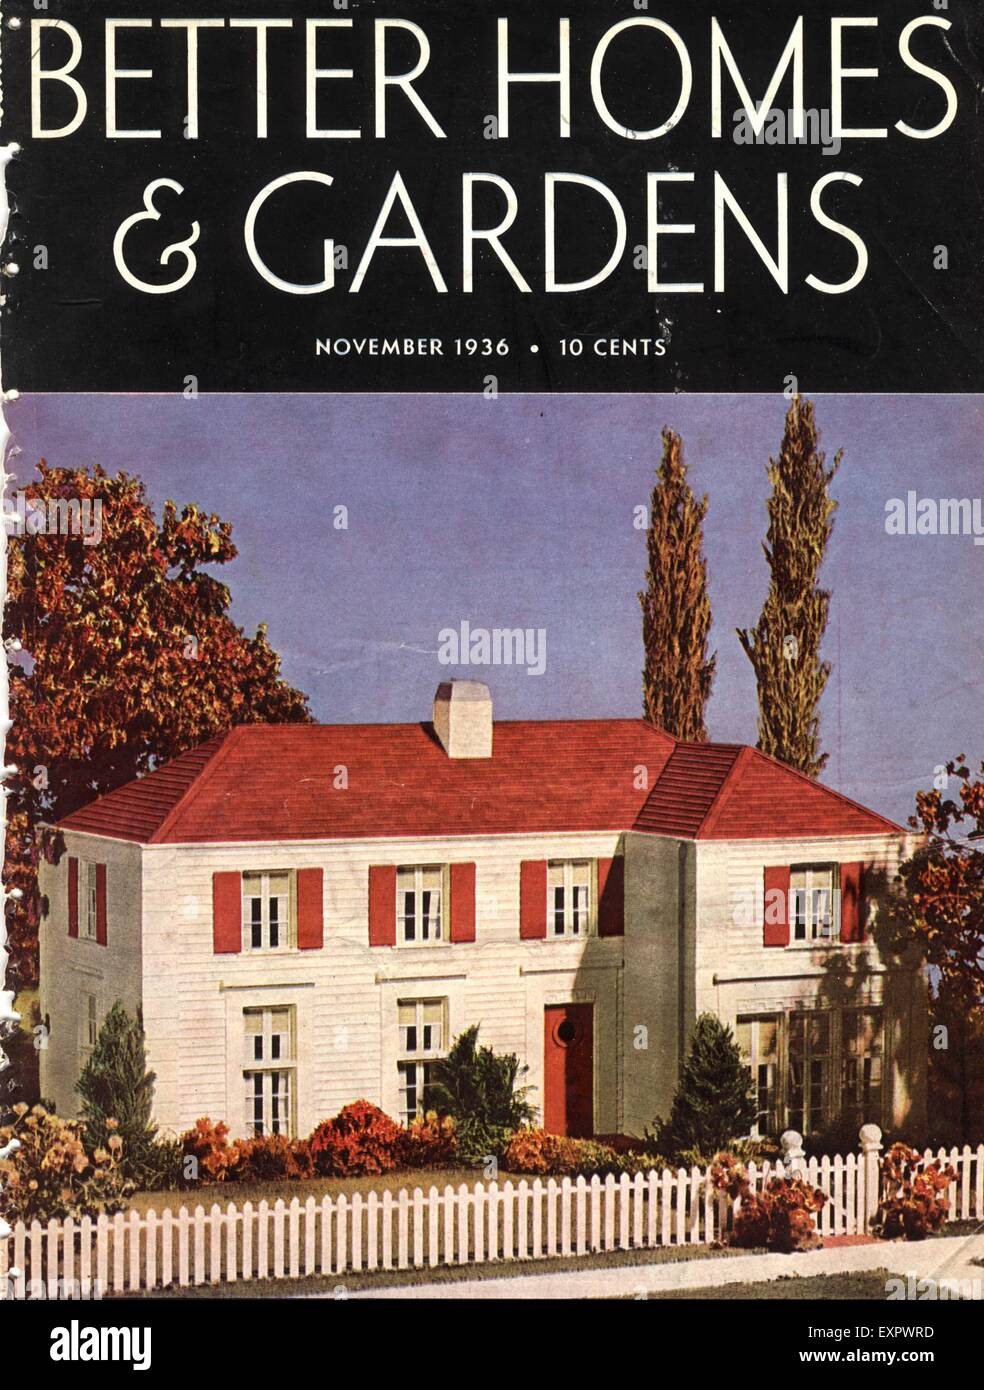 1930s USA Better Homes And Gardens Magazine Cover